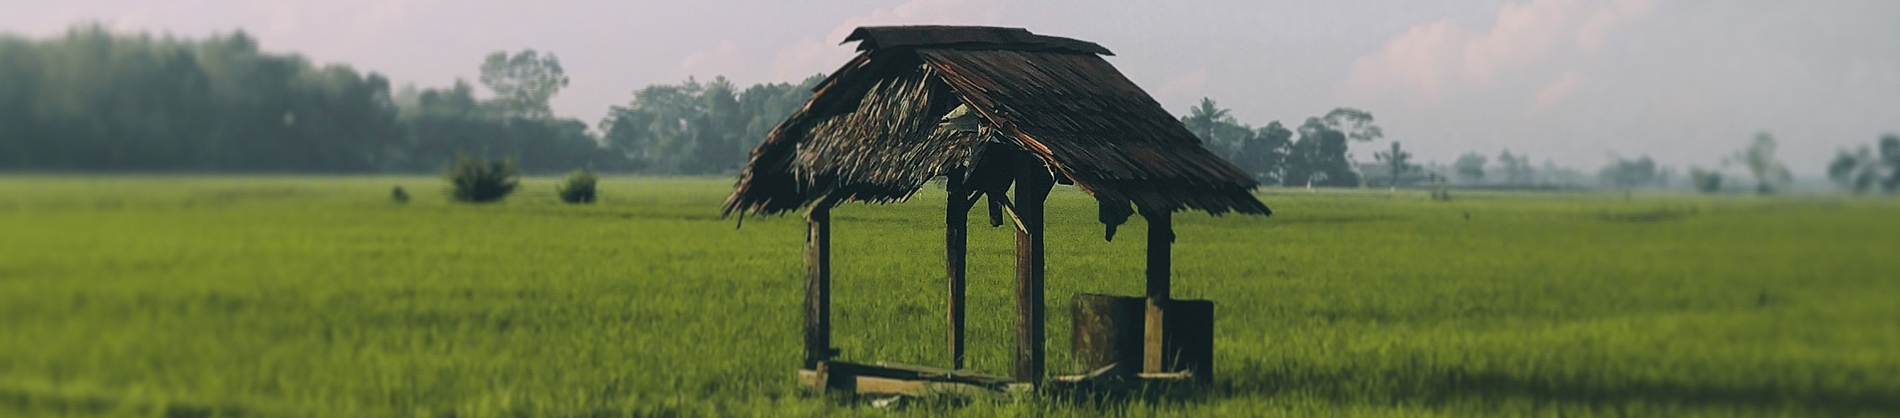 A man-made wooden well in the middle of a field